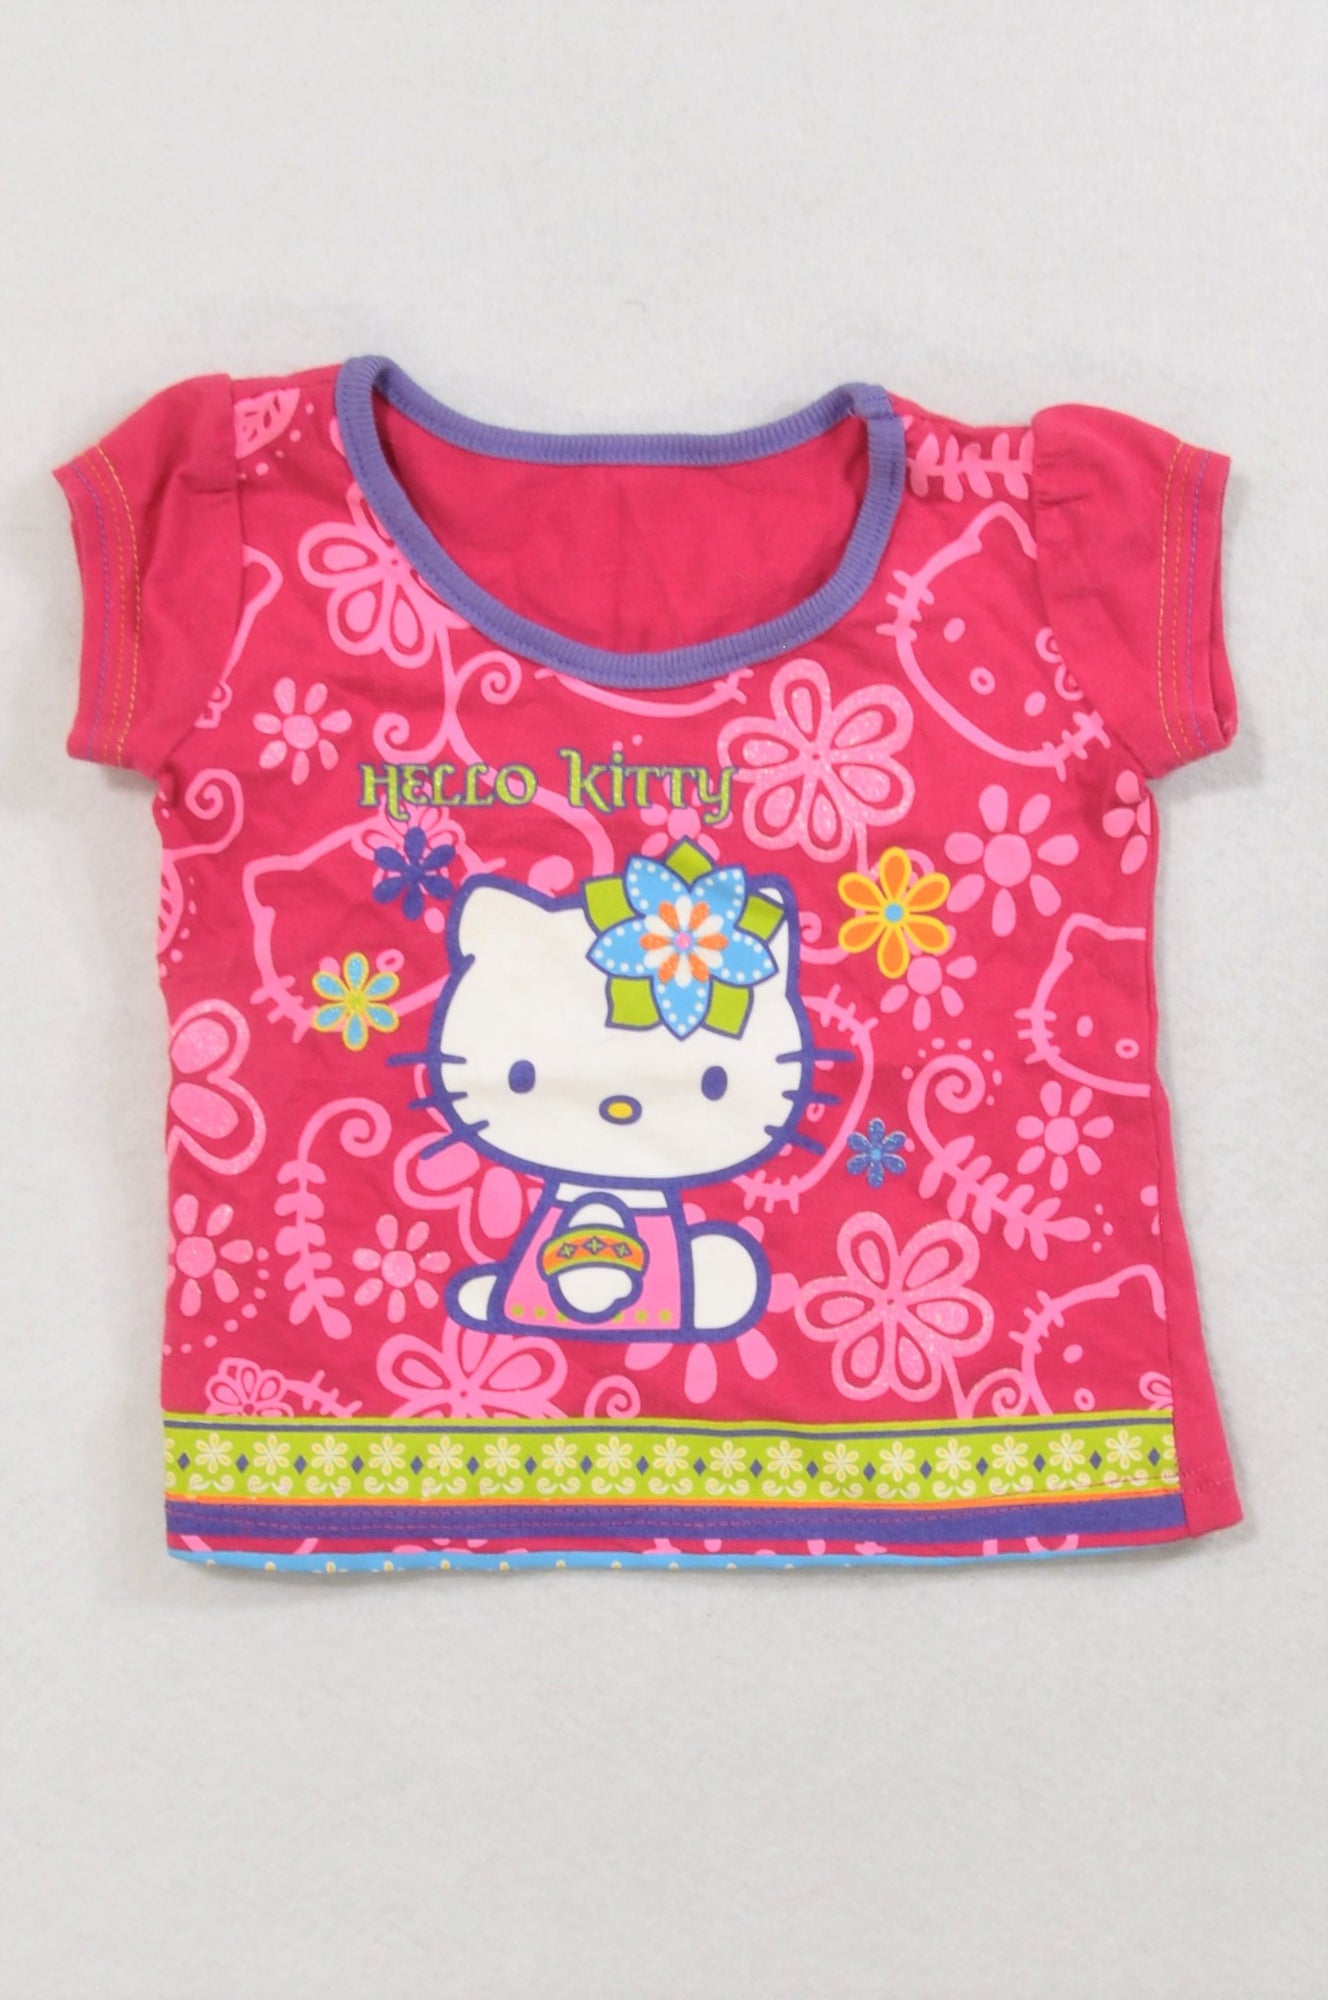 Woolworths Cerise Hello Kitty T-shirt Girls 0-3 months